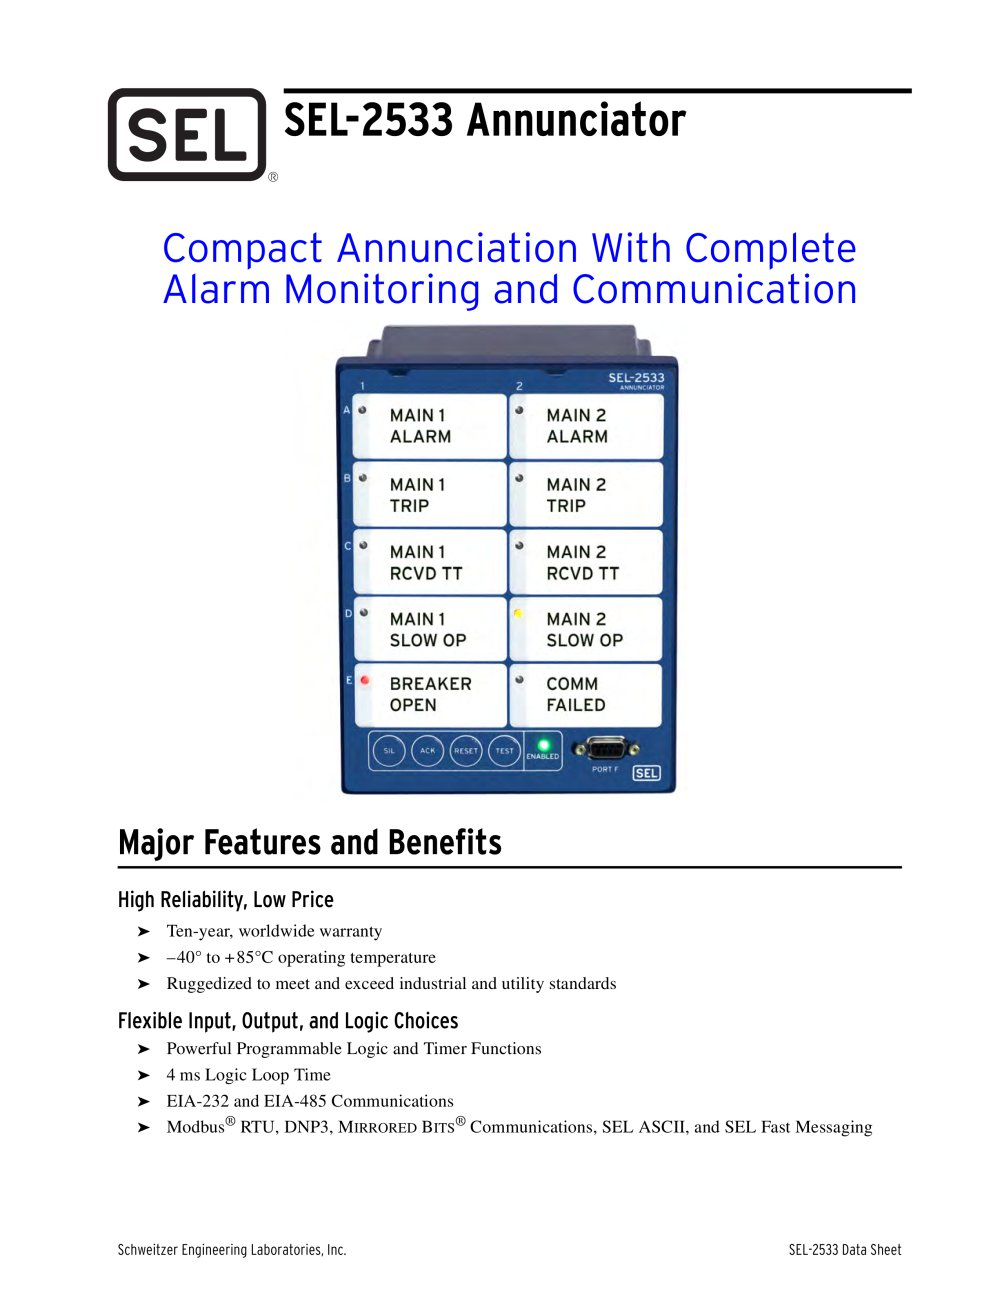 SEL-2533 Annunciator - 1 / 12 Pages